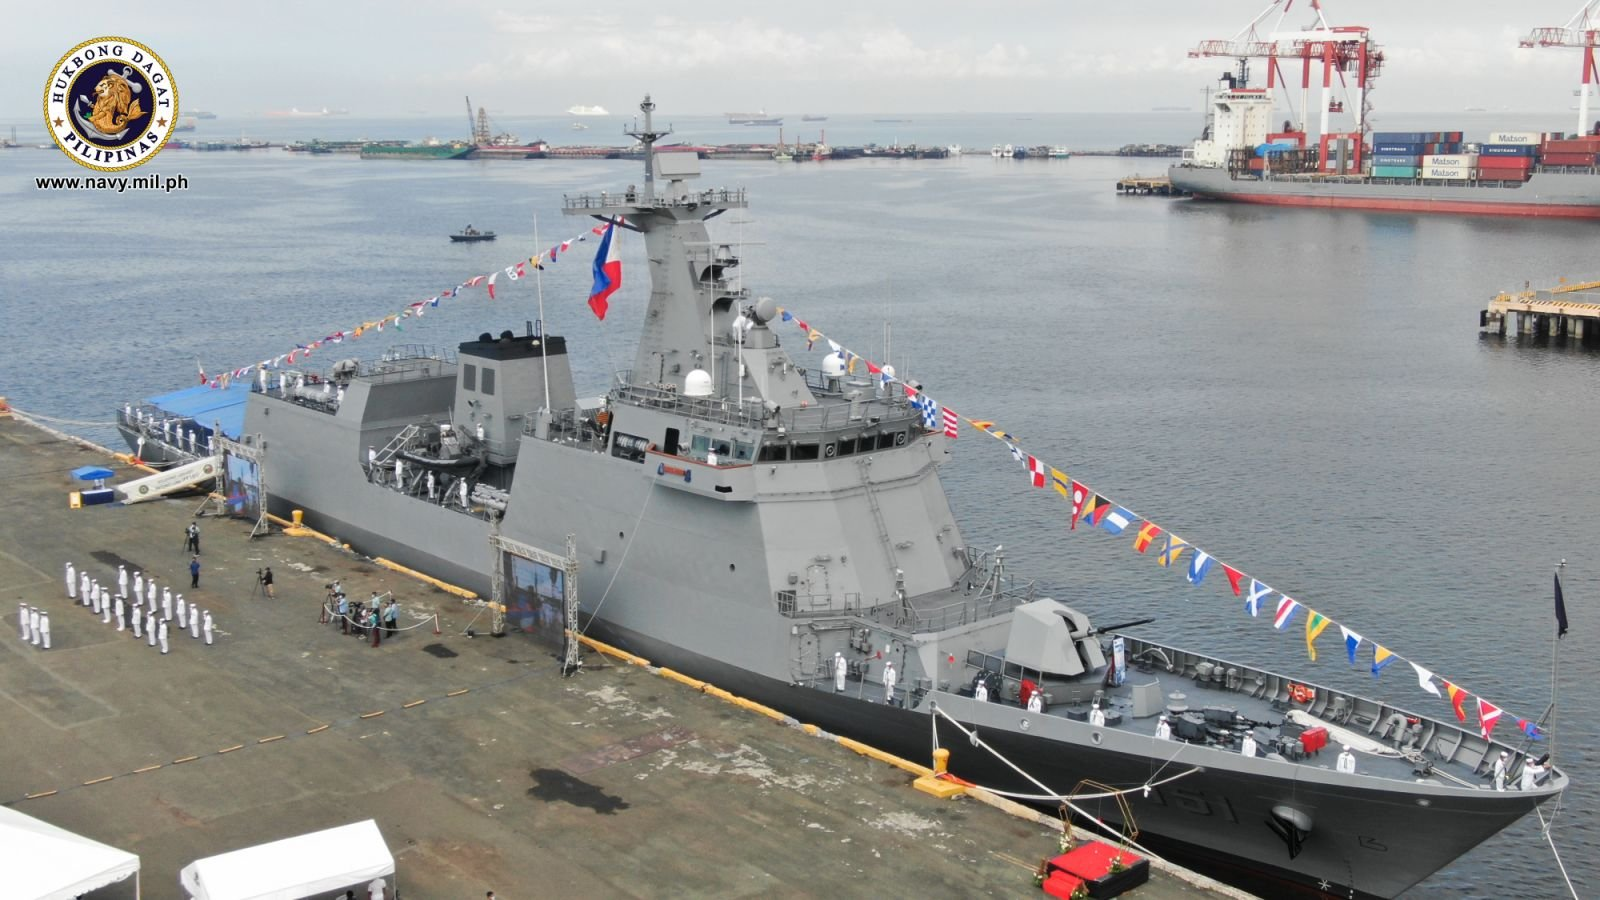 https://www.navyrecognition.com/images/stories/news/2021/march/Philippines_commissions_BRP_Antonio_Lucas_FF-151.jpg